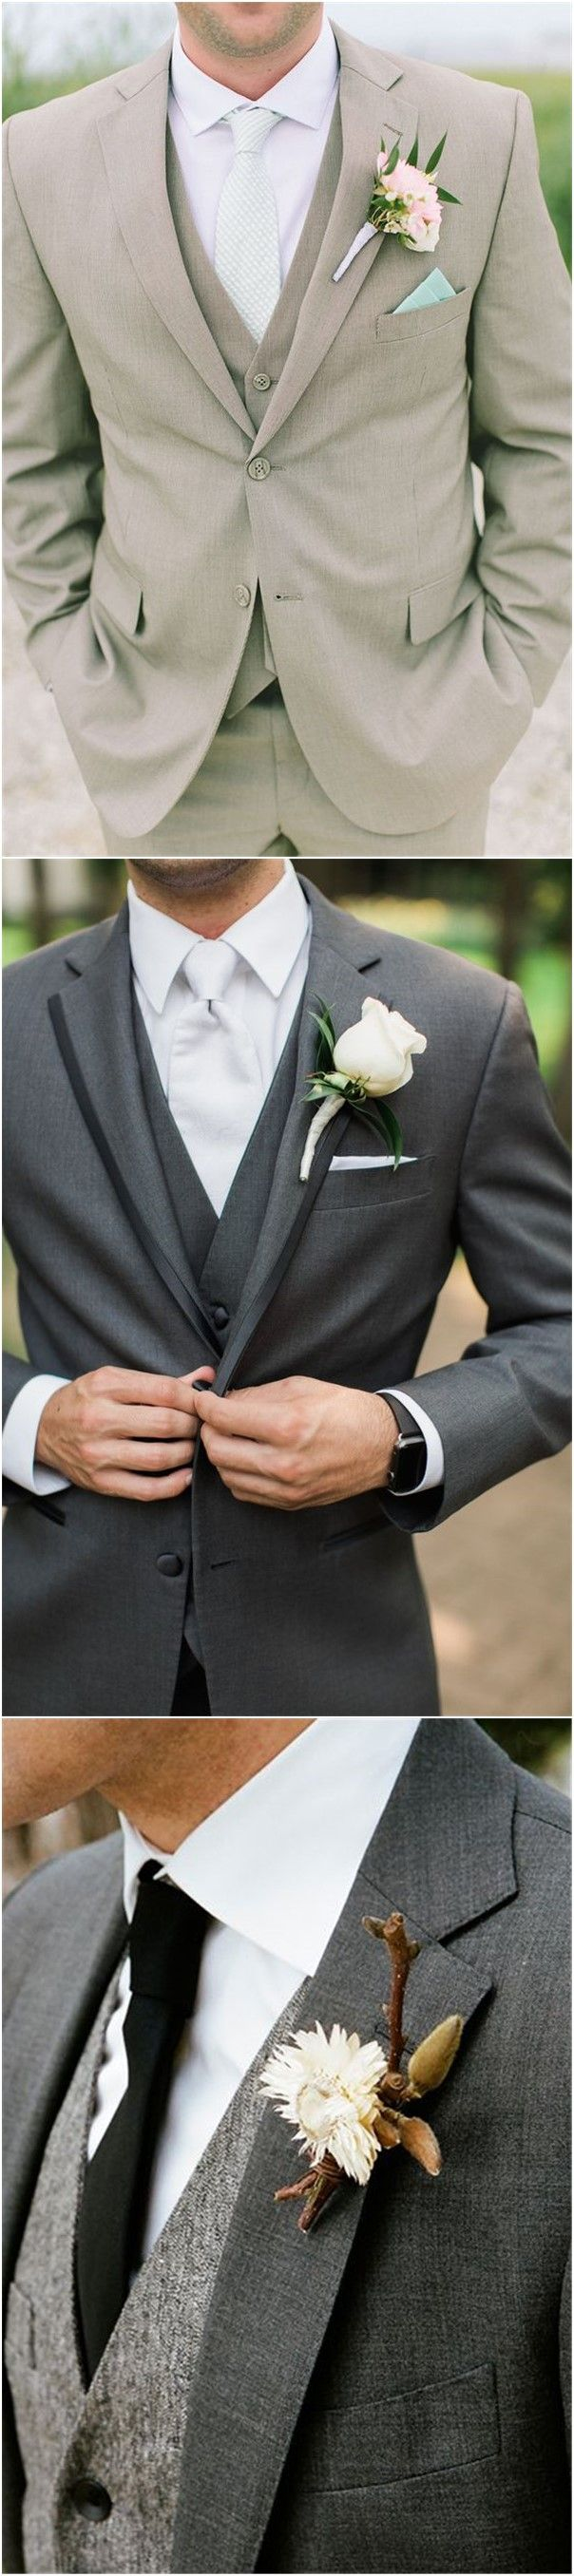 groom suit that express your unique styles and personalities